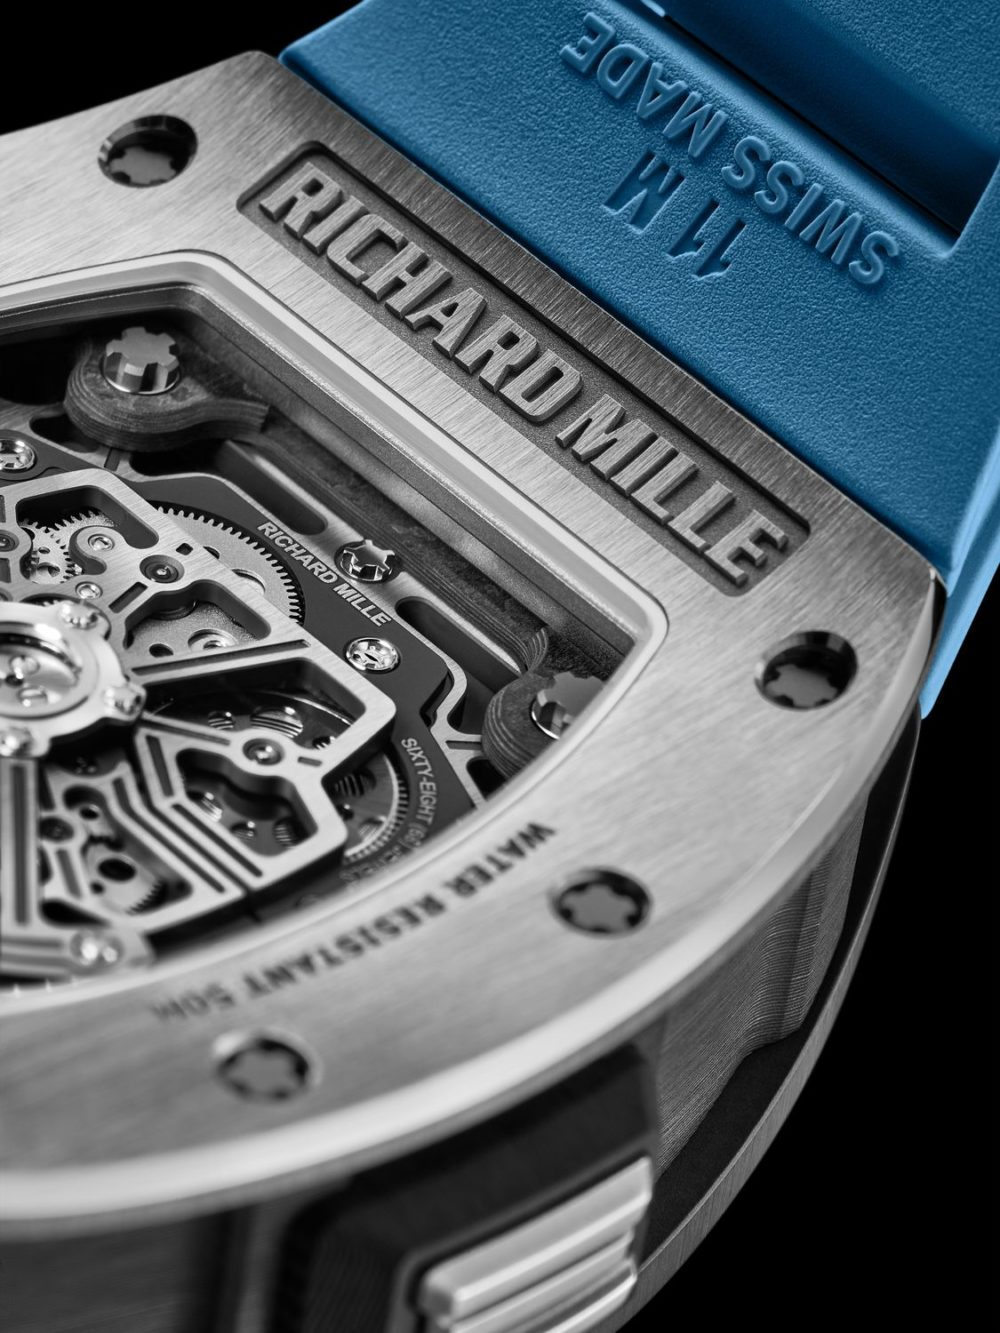 Introducing Richard Mille's RM 11-05 Automatic Winding Flyback Chronograph GMT